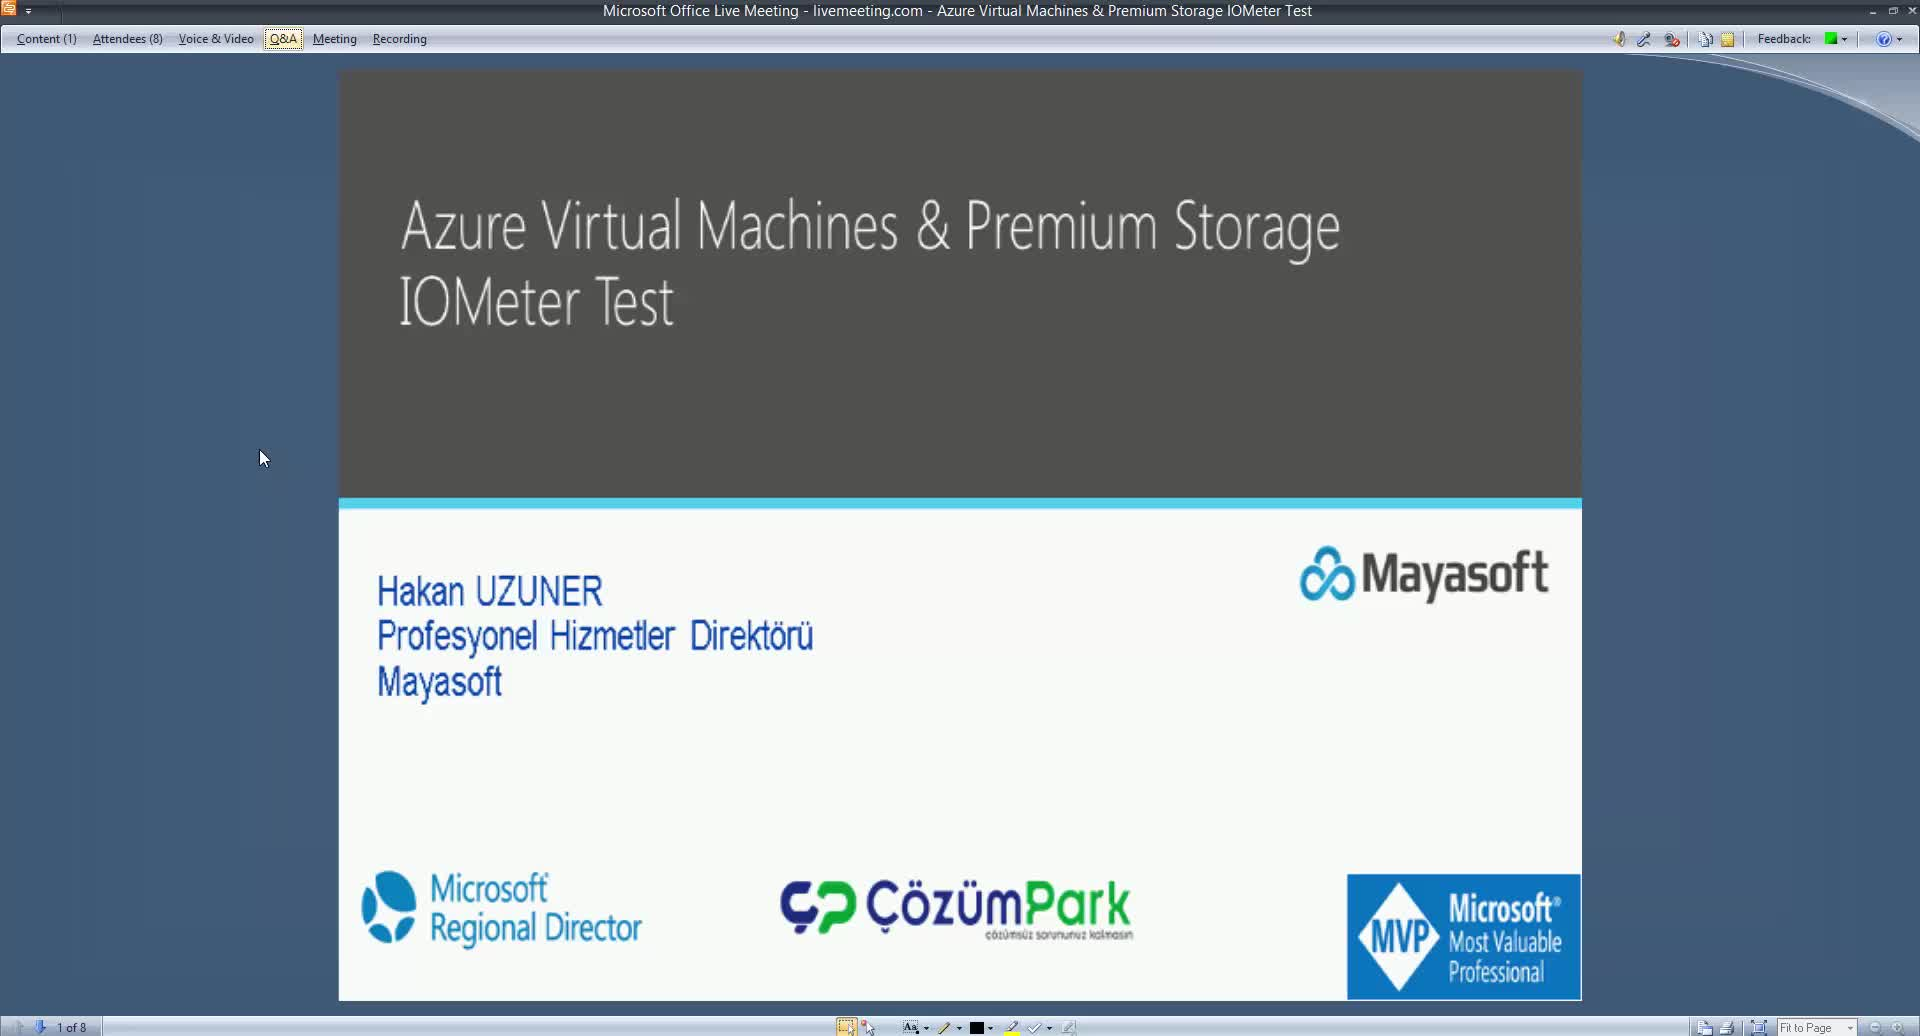 Azure Virtual Machines - Premium Storage IOMeter Test